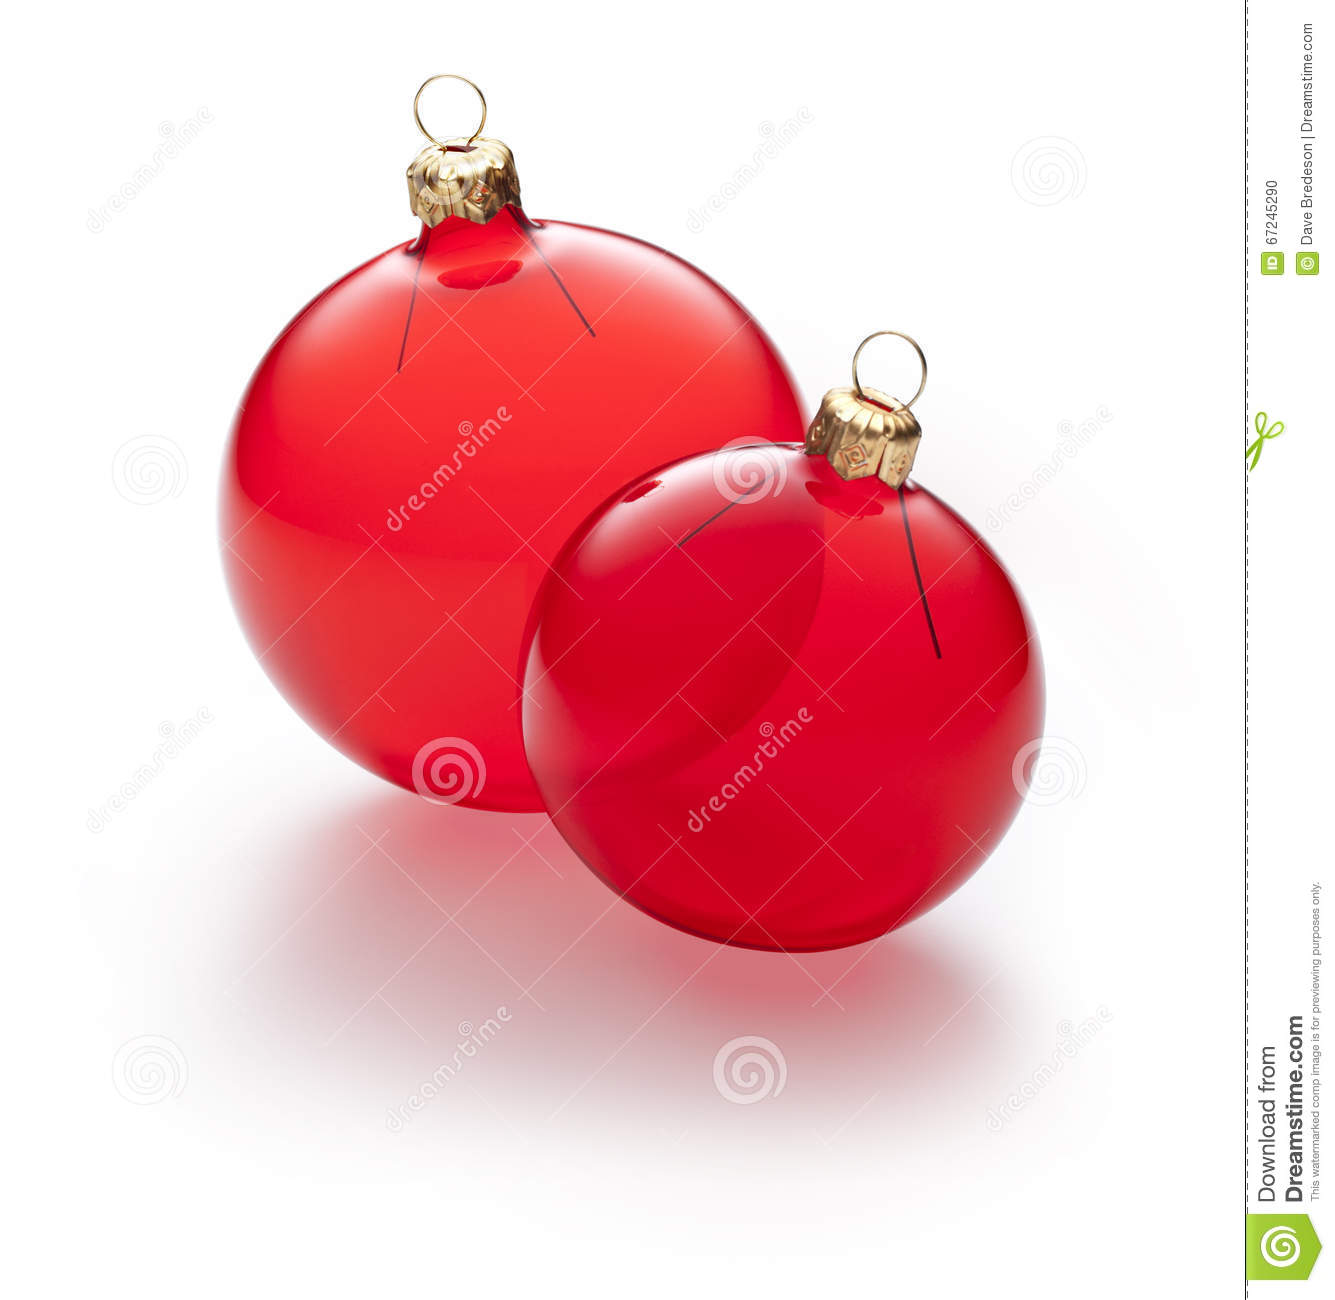 download two clear red christmas ornaments stock photo image of baubles tasteful 67245290